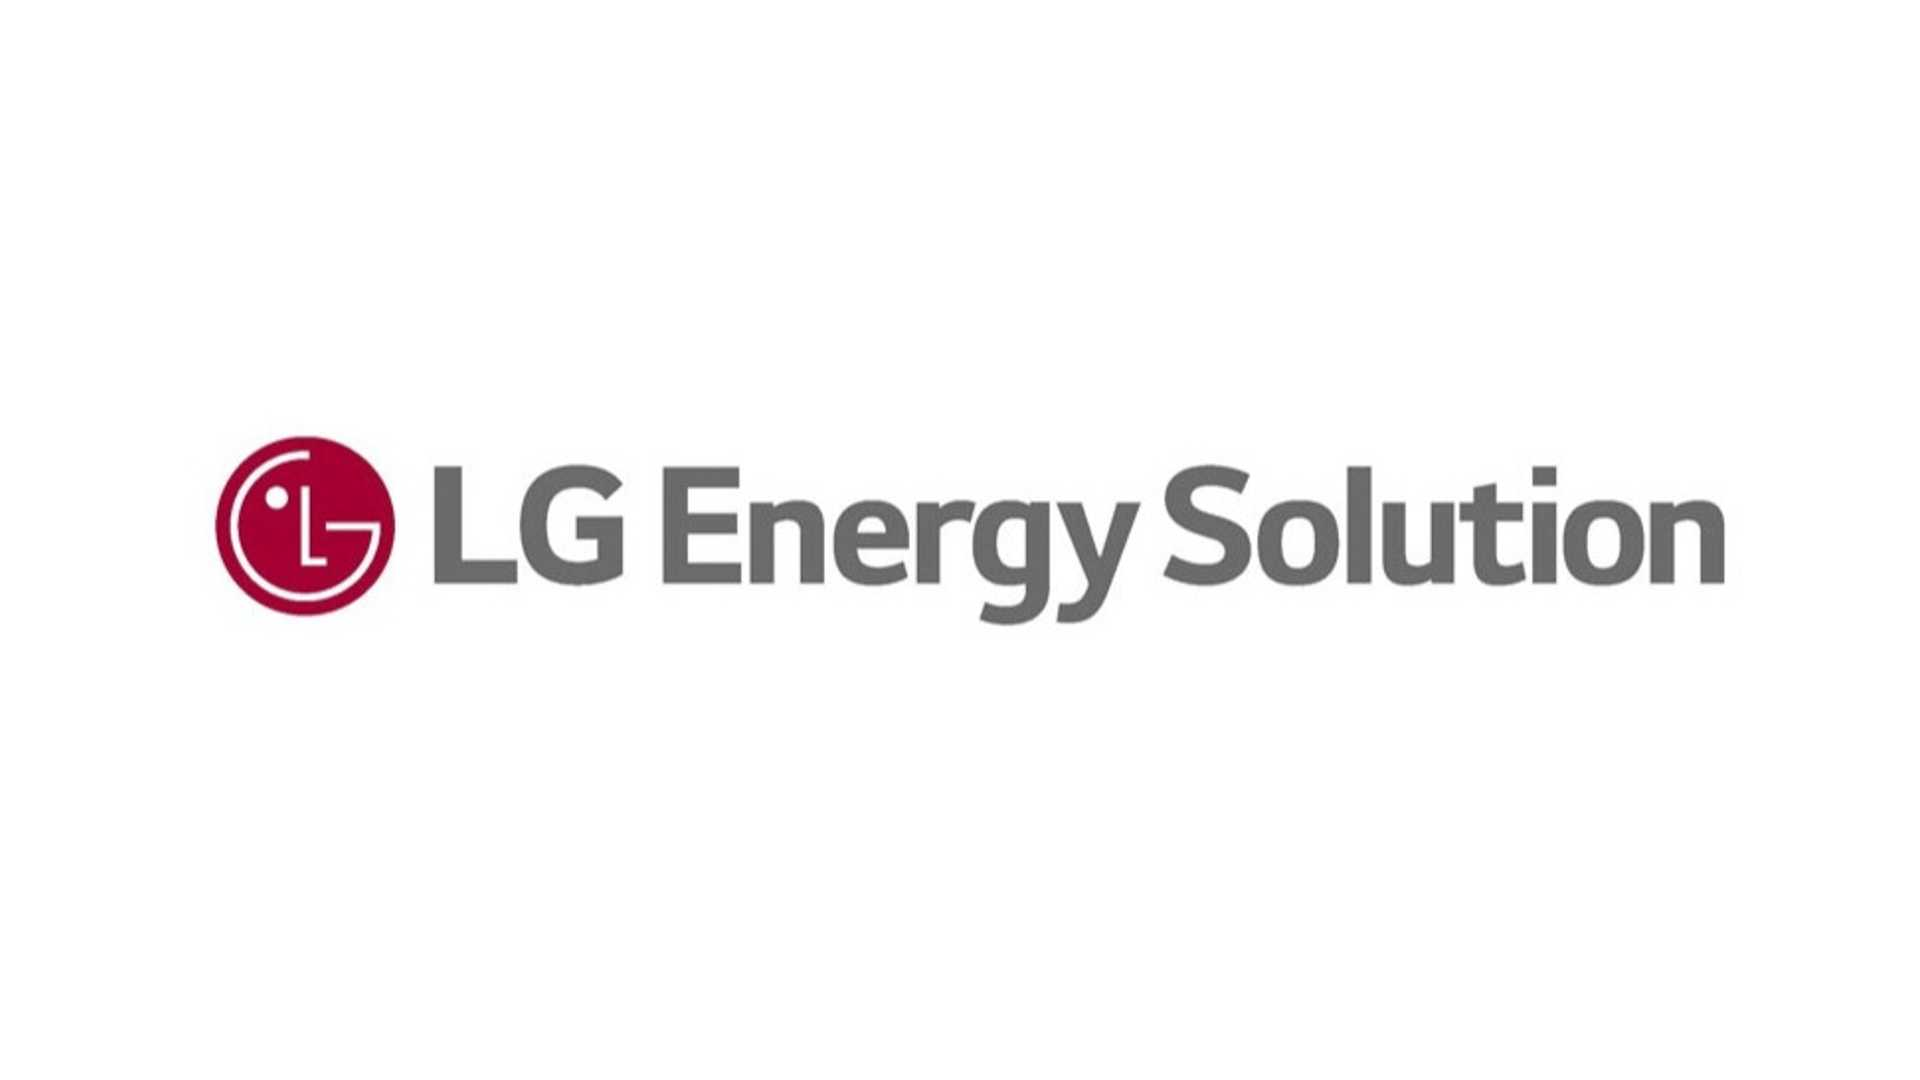 LG Energy Solution